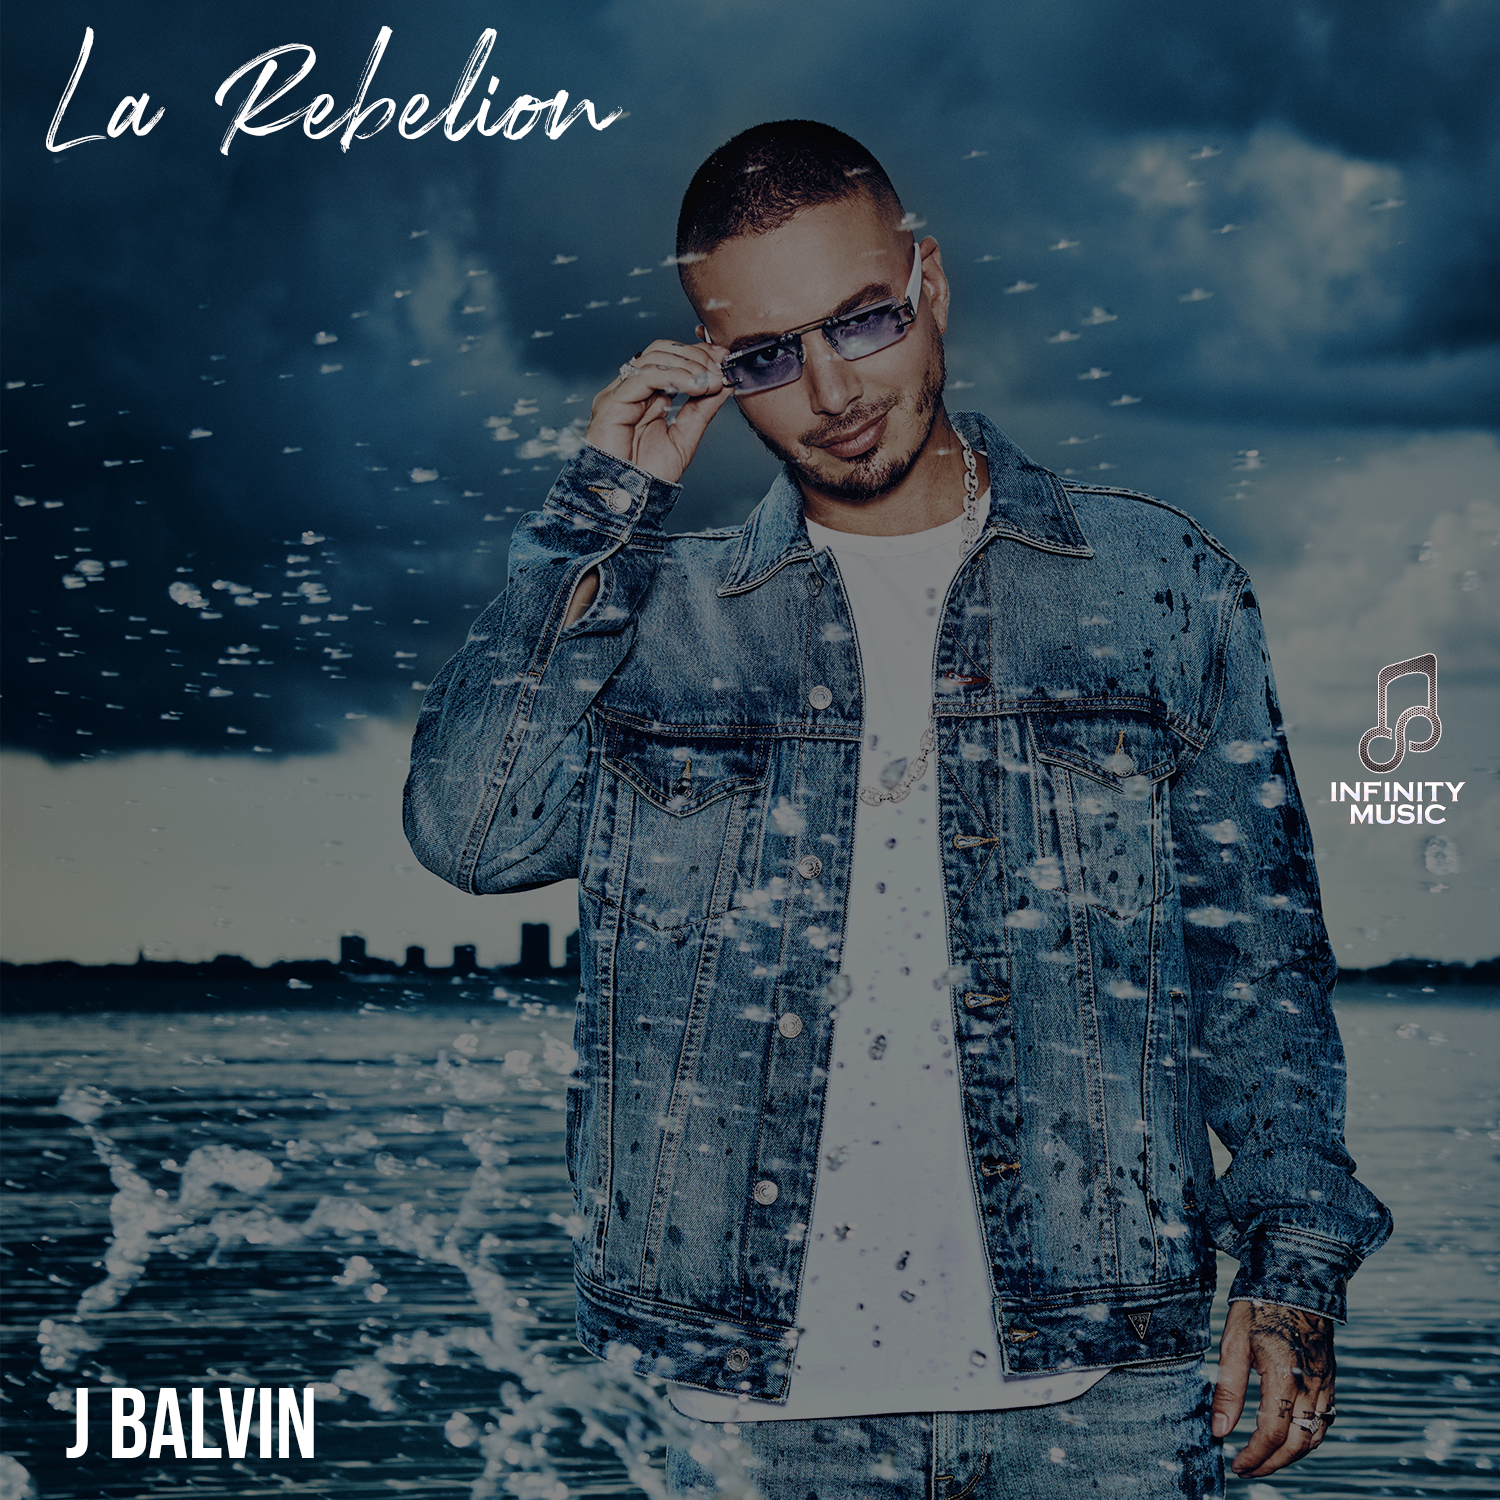 Descargar Mp3 J Balvin La Rebelion Gratis Flowhot Net